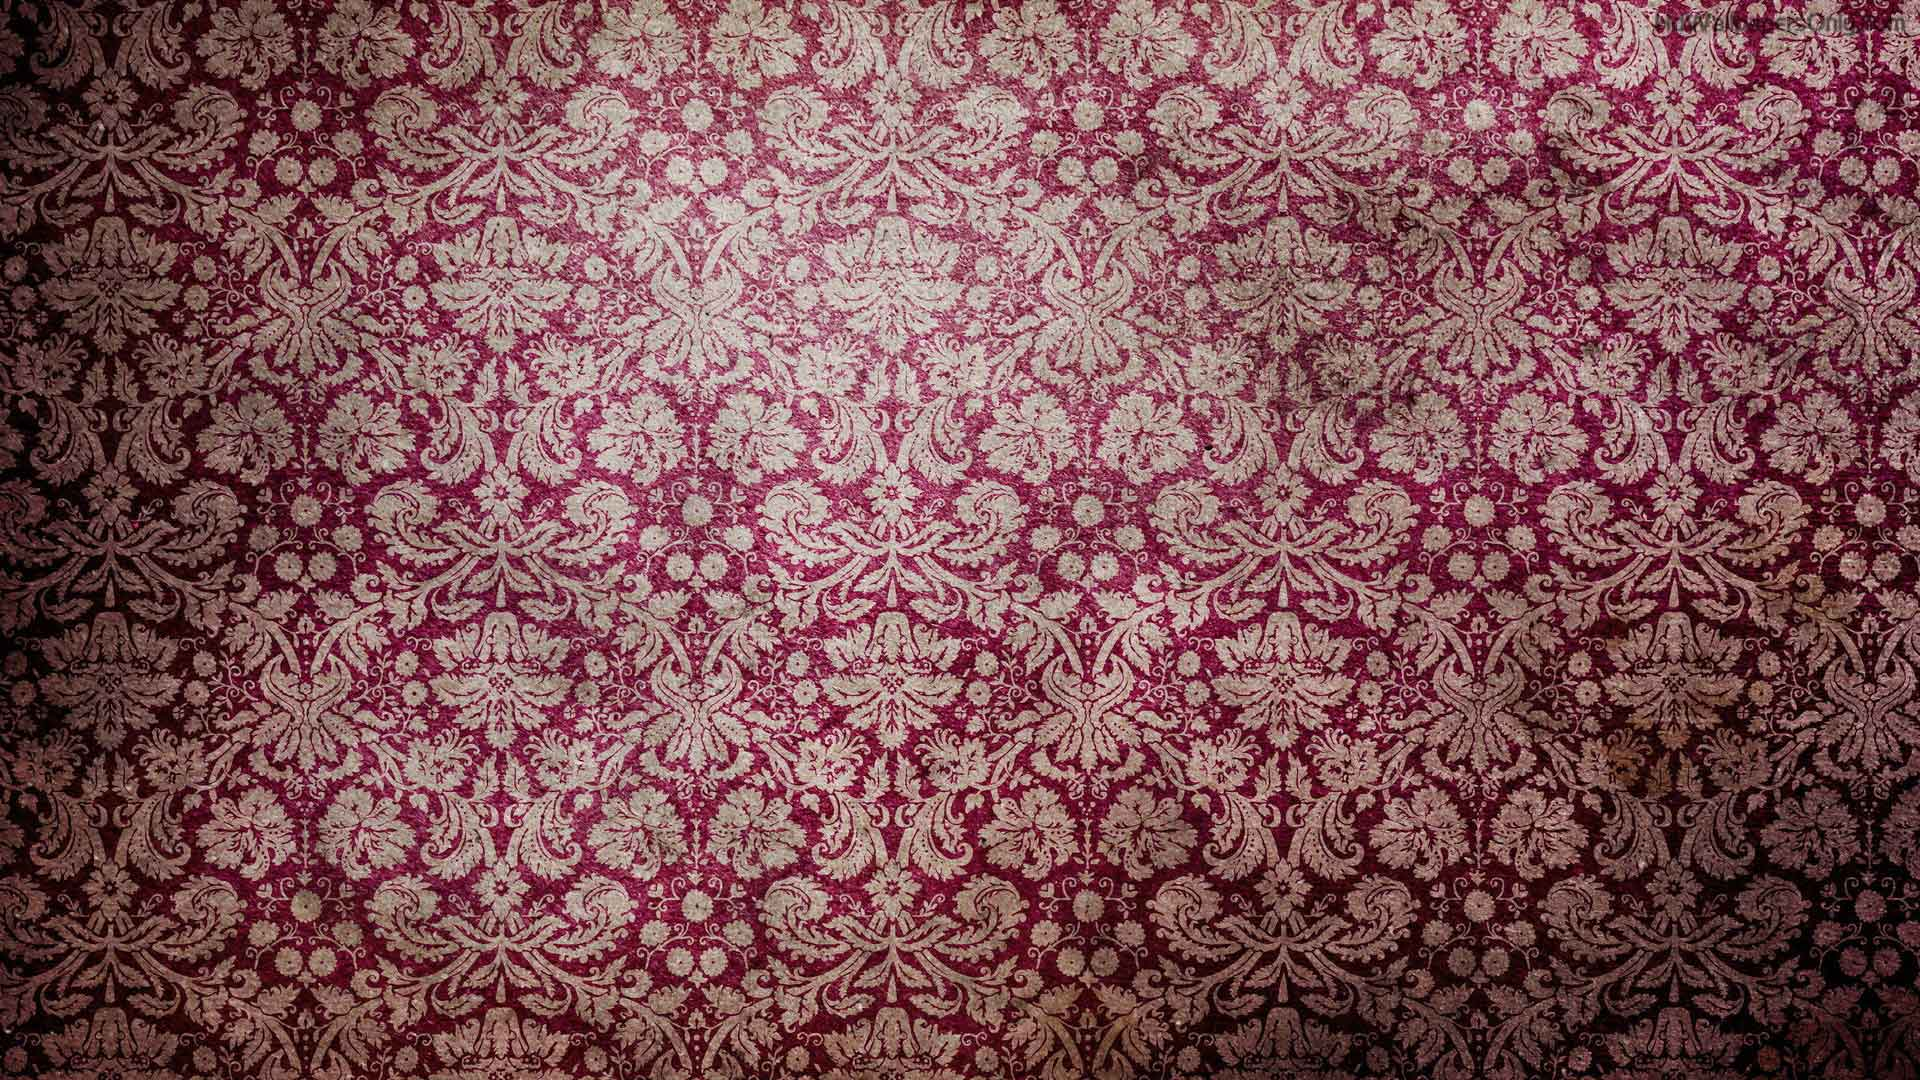 Vintage hd backgrounds wallpaper cave for Vintage bedroom wallpaper